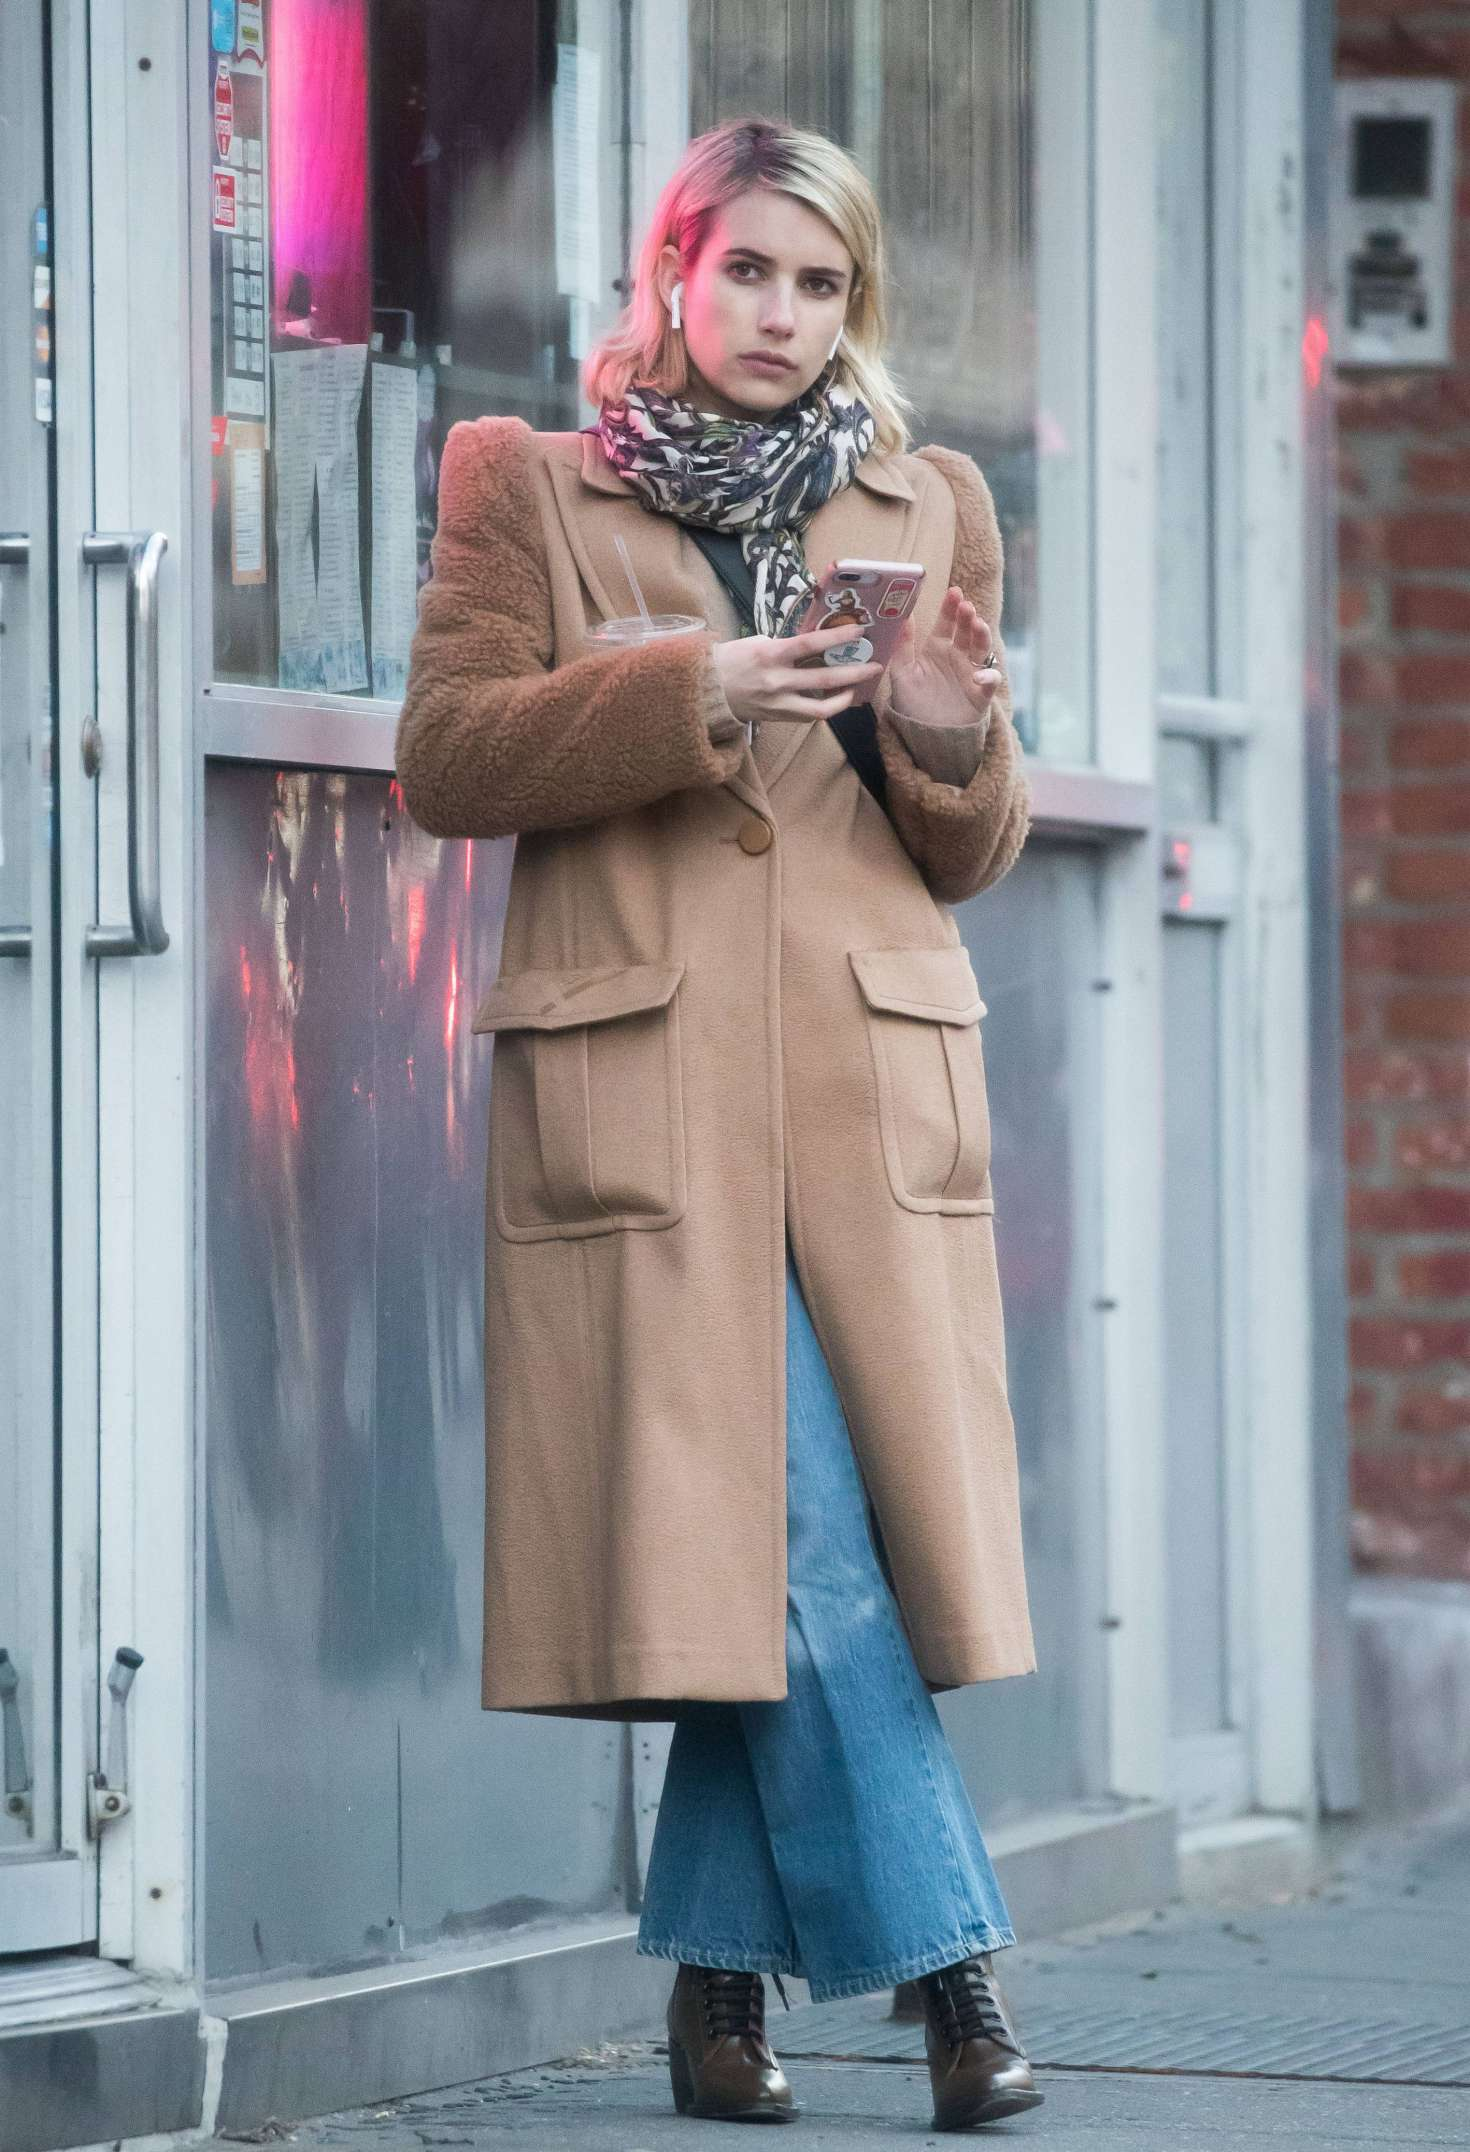 Emma Roberts – On Valentine's Day in New York City